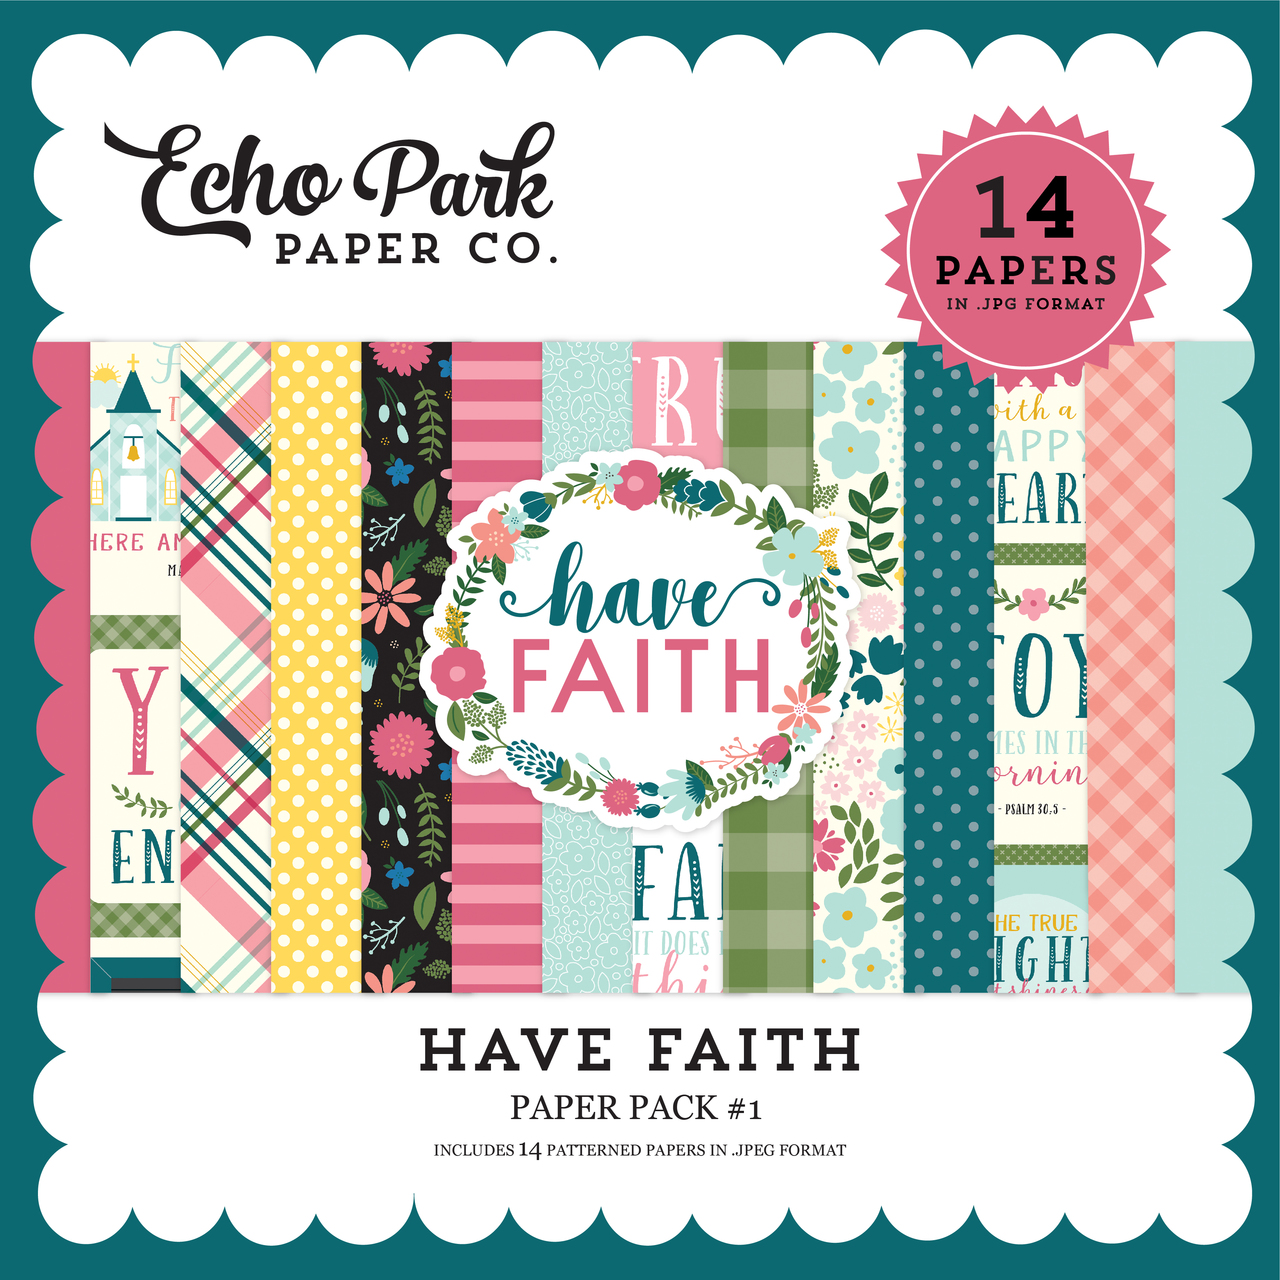 Have Faith Paper Pack #1